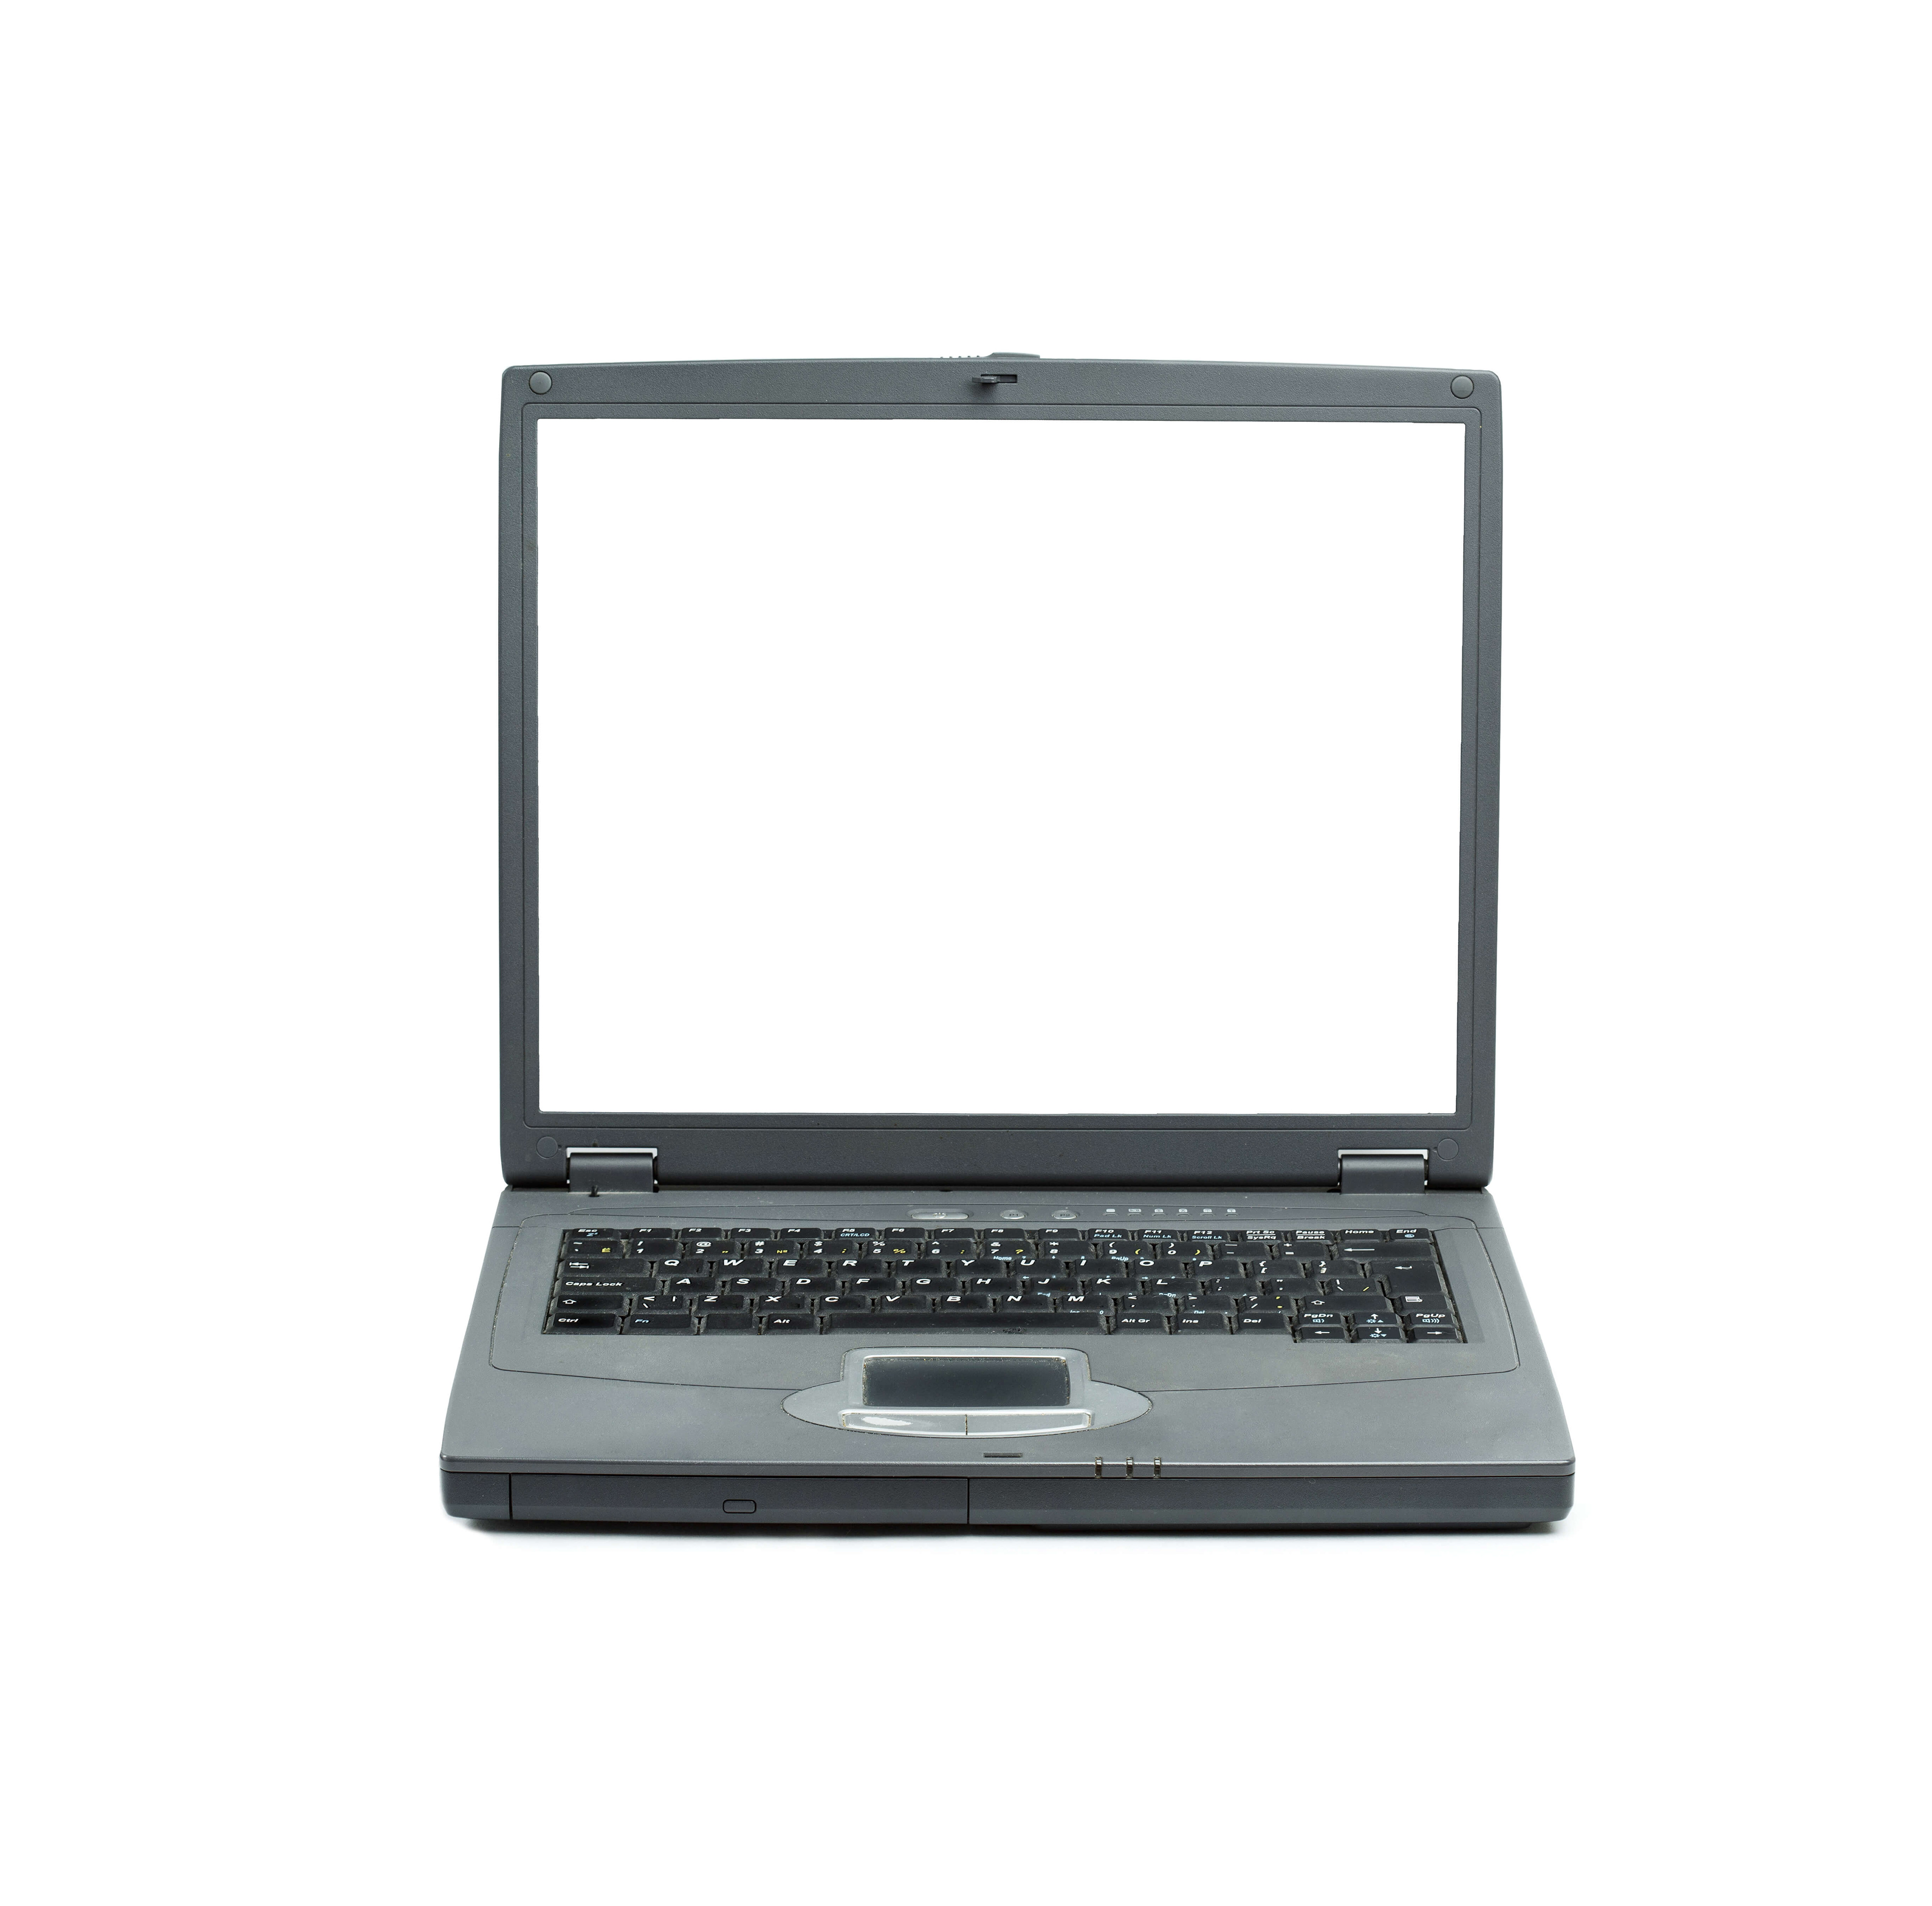 Laptop from between 2006 and 2009